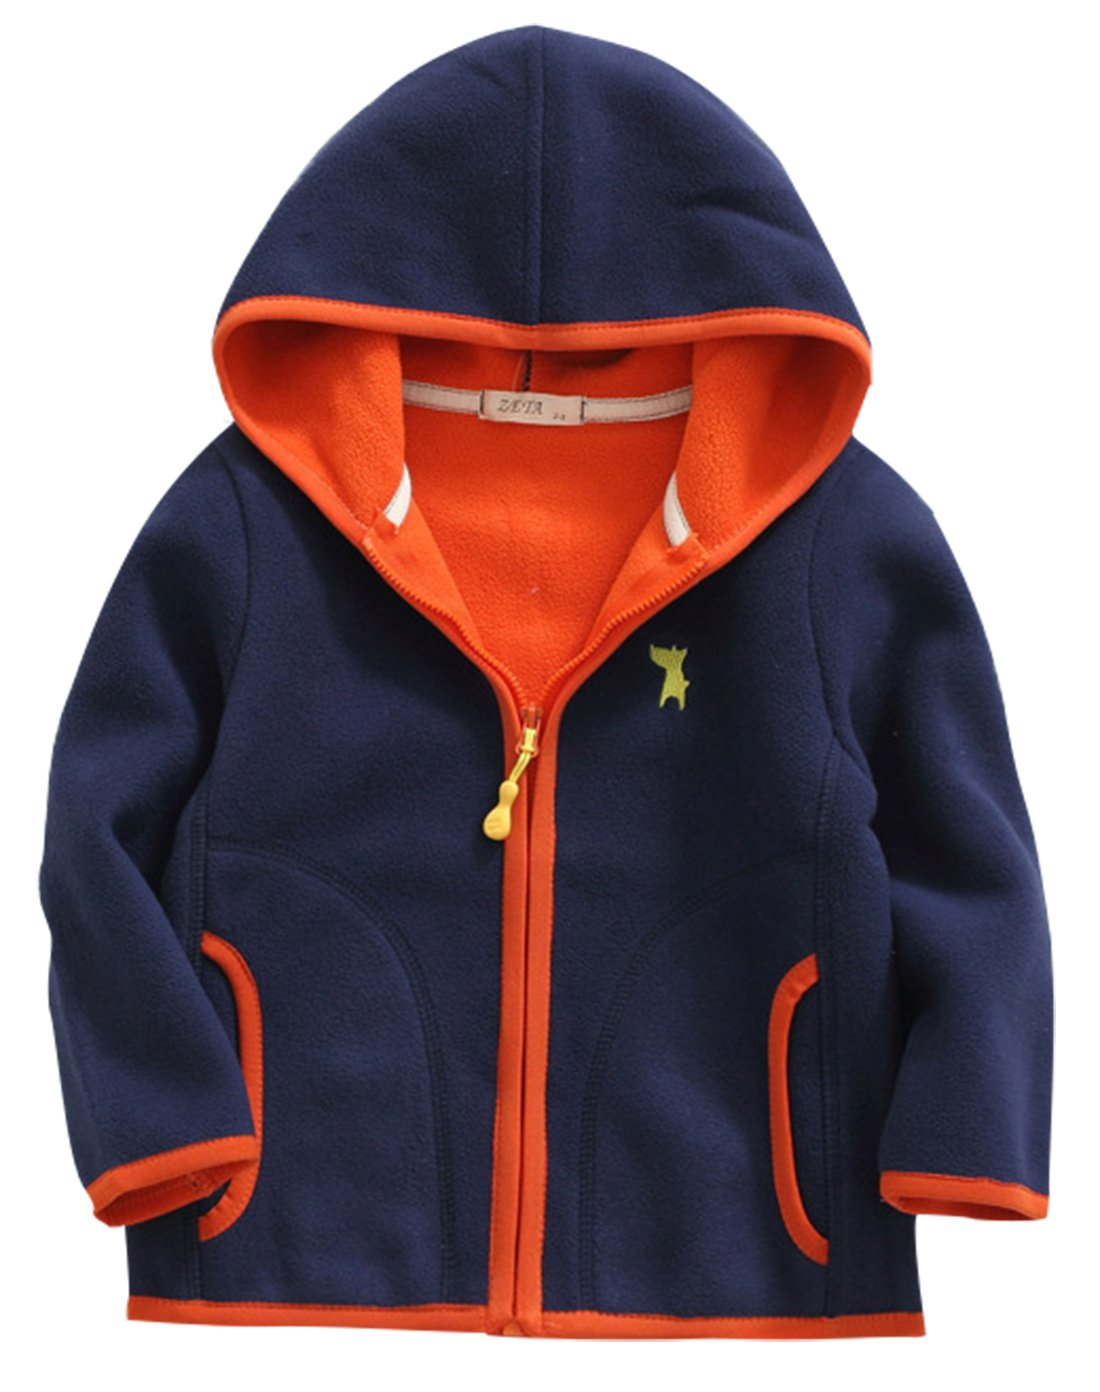 Boys Fleece Jacket Winter Soft Warm Zipper Up Hand Pockets Hooded Coat 2-8T ZETA DIKES